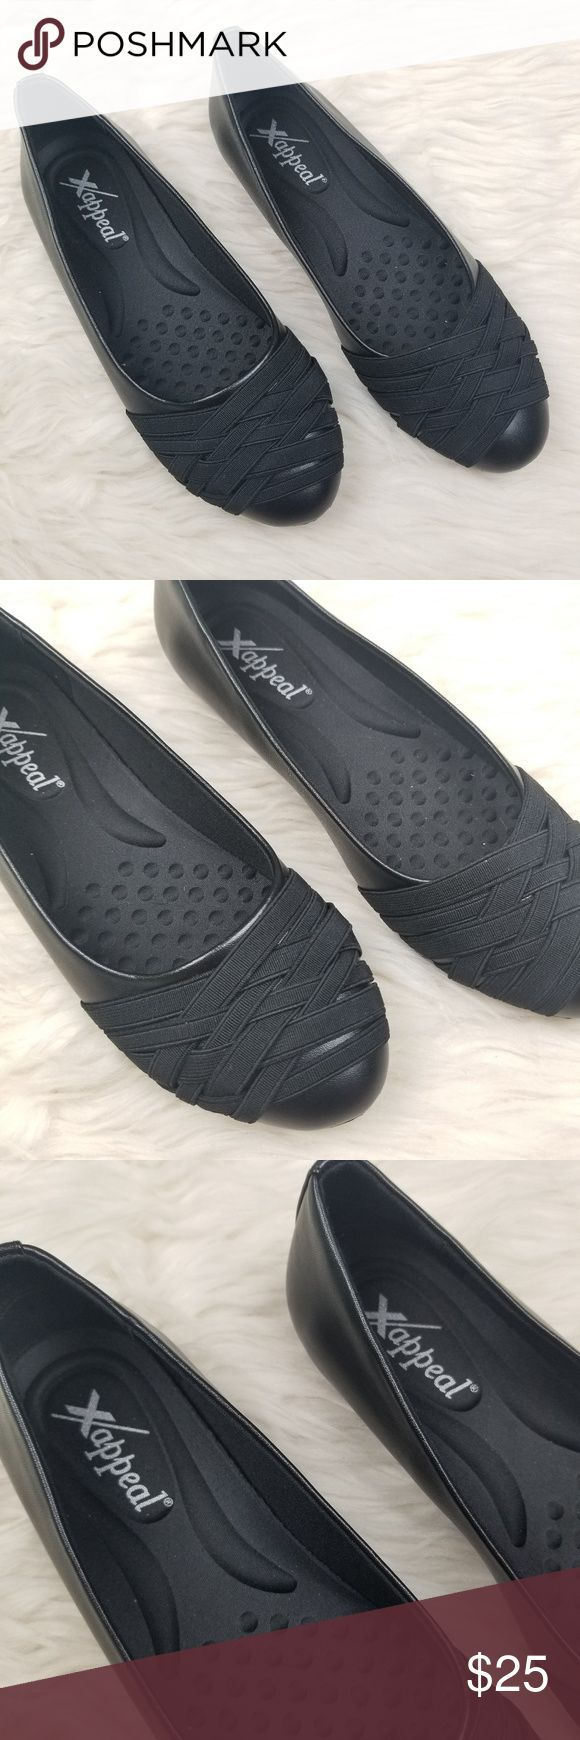 Xappeal Black Flats New Without tags Xappeal Black Flats New Without tags Super  Xappeal Black Flats New Without tags Xappeal Black Flats New Without tags Super